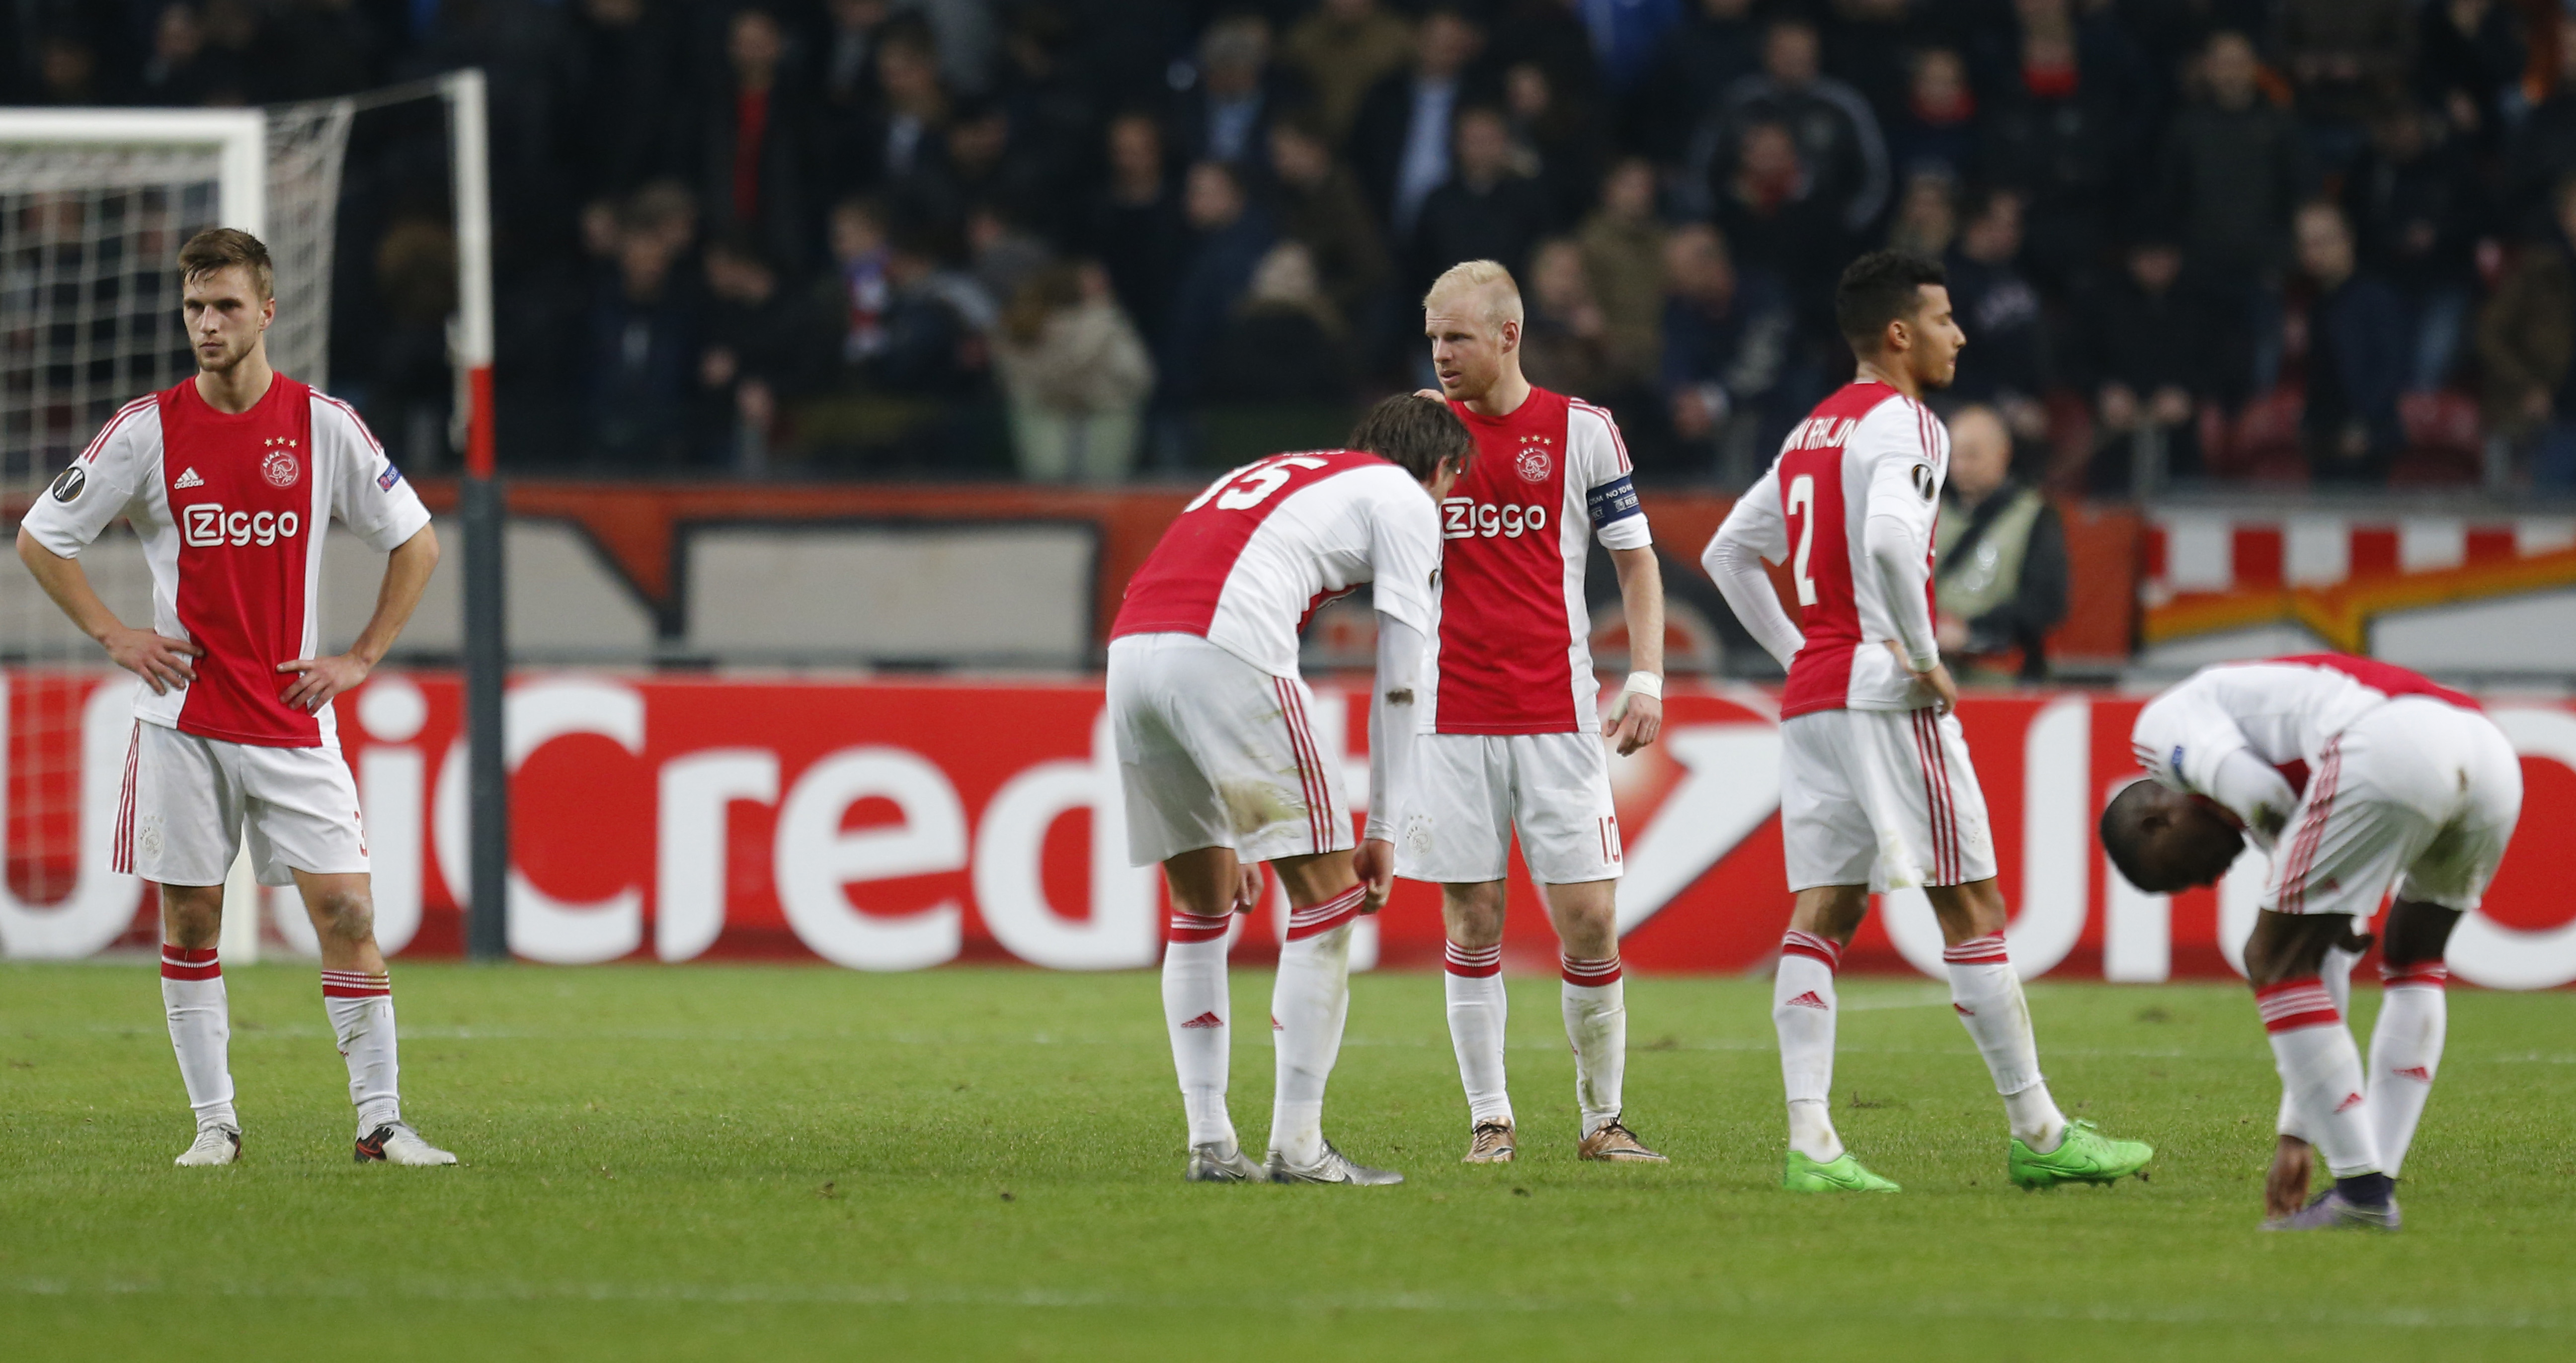 Ajax players react at the end of the group A Europa League soccer match between Ajax and Molde at the ArenA stadium in Amsterdam, Netherlands, Thursday, Dec. 10, 2015. Photo: AP